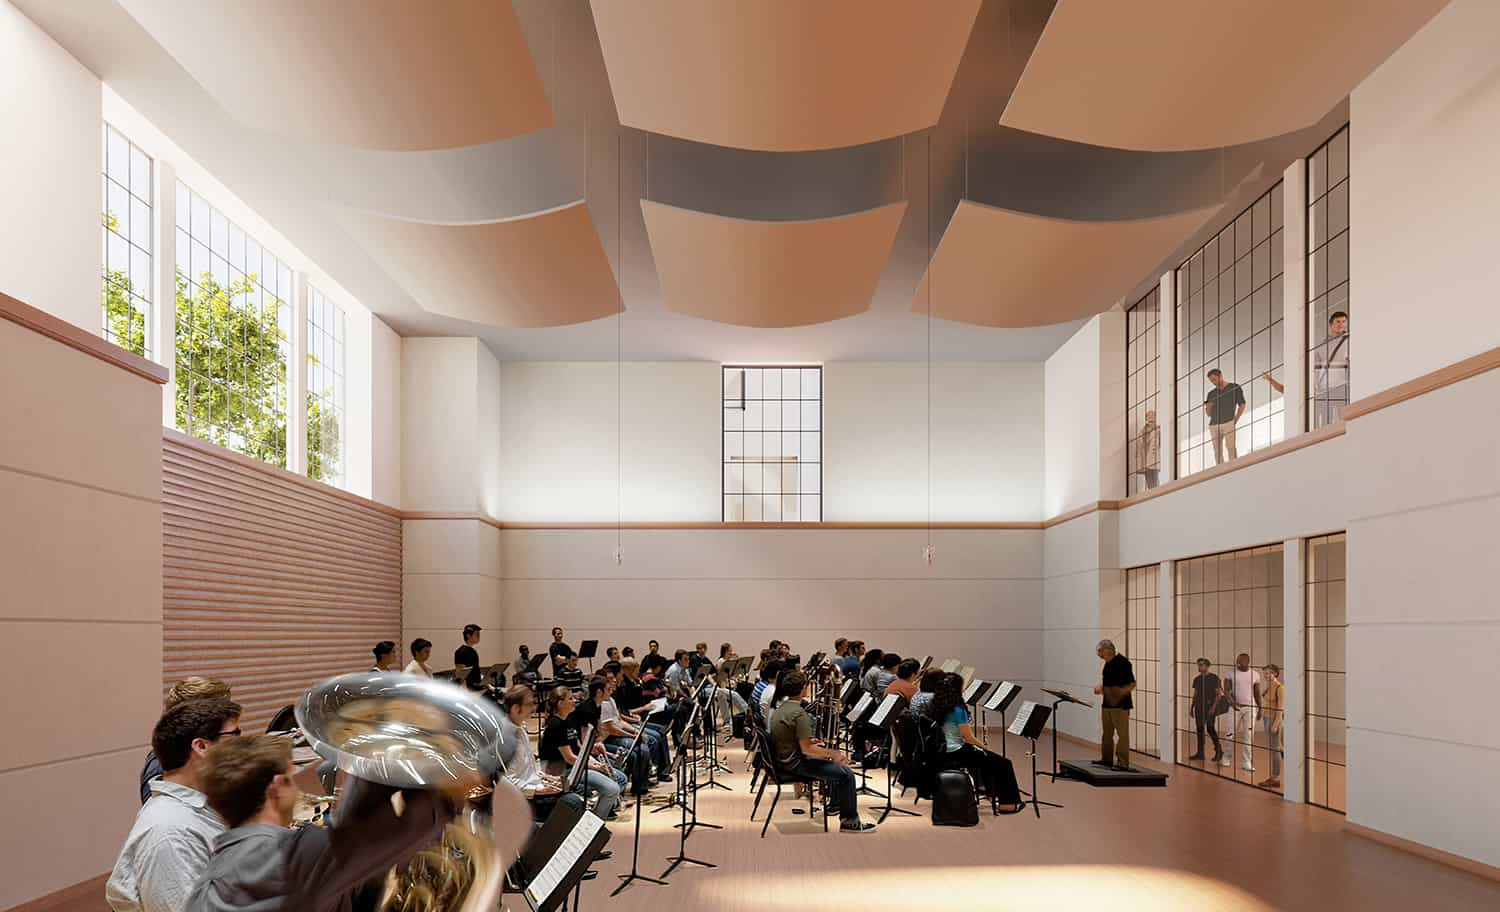 Rendering of the instrument rehearsal room with clerestory winows.